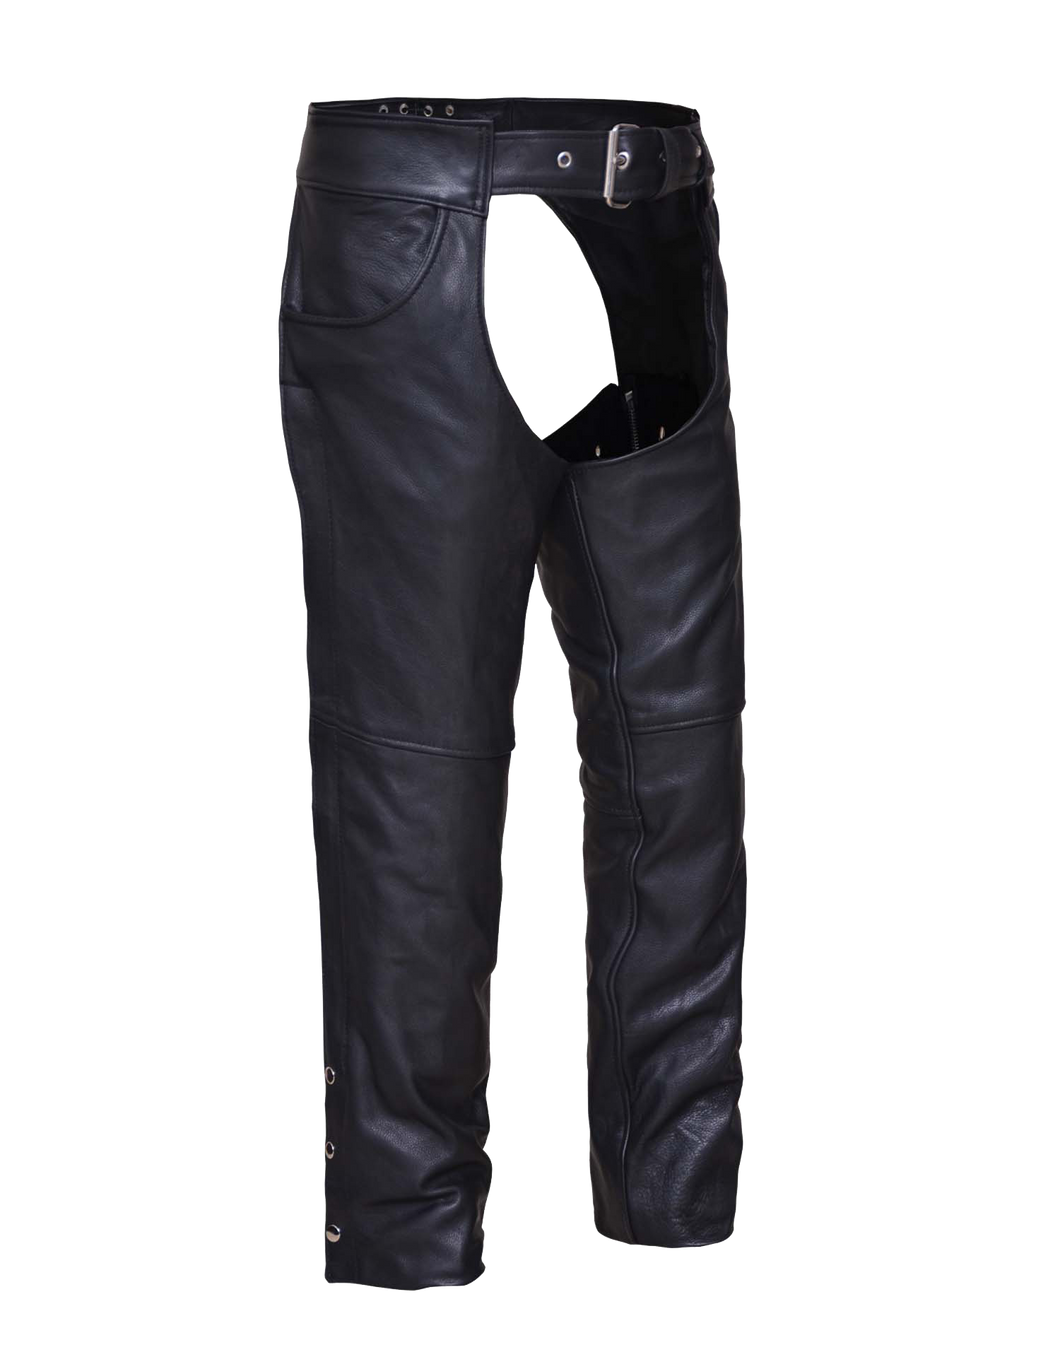 UNIK Unisex Ultra Leather Motorcycle Chaps